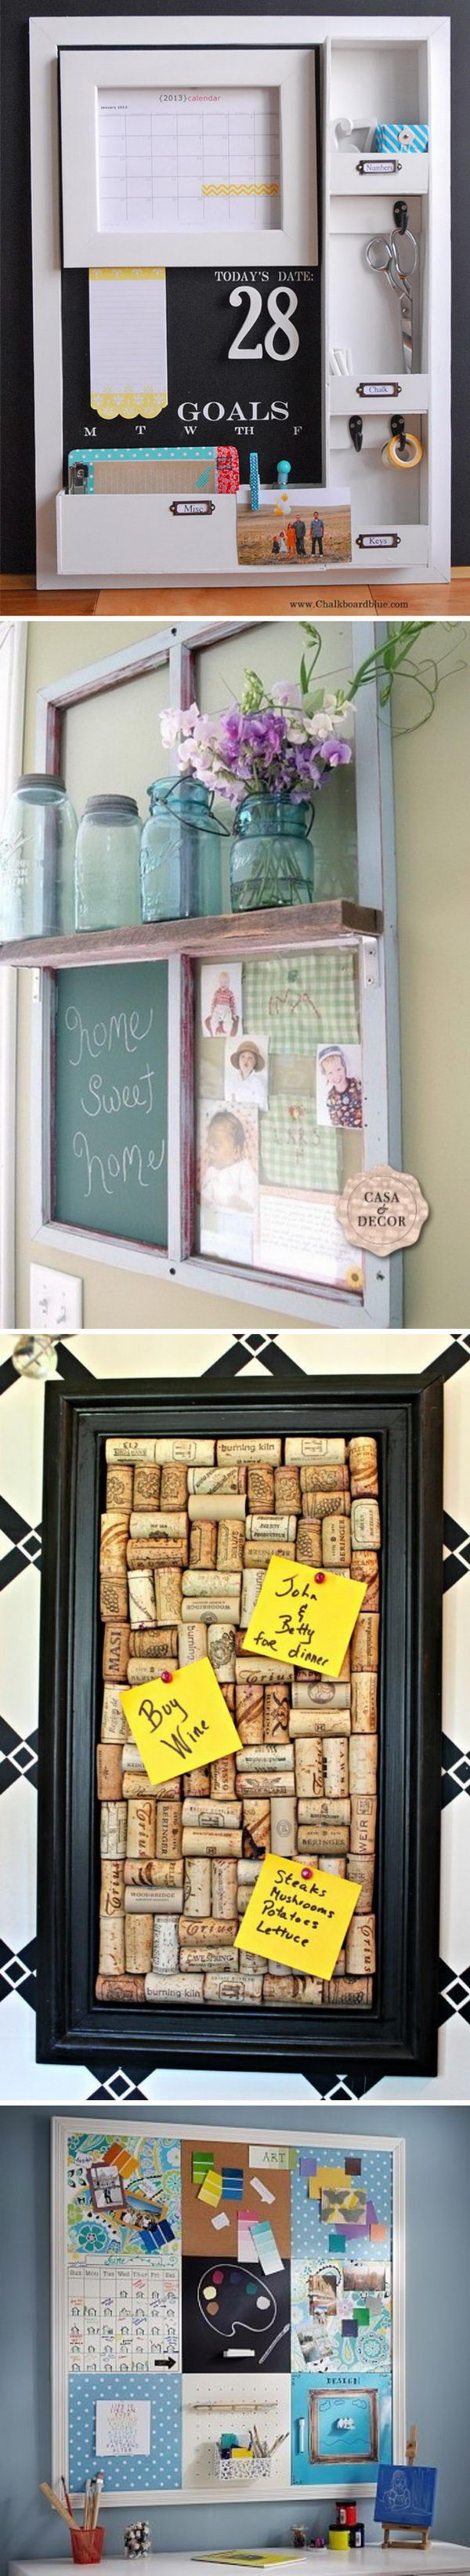 Creative Bulletin Board DIY Projects.